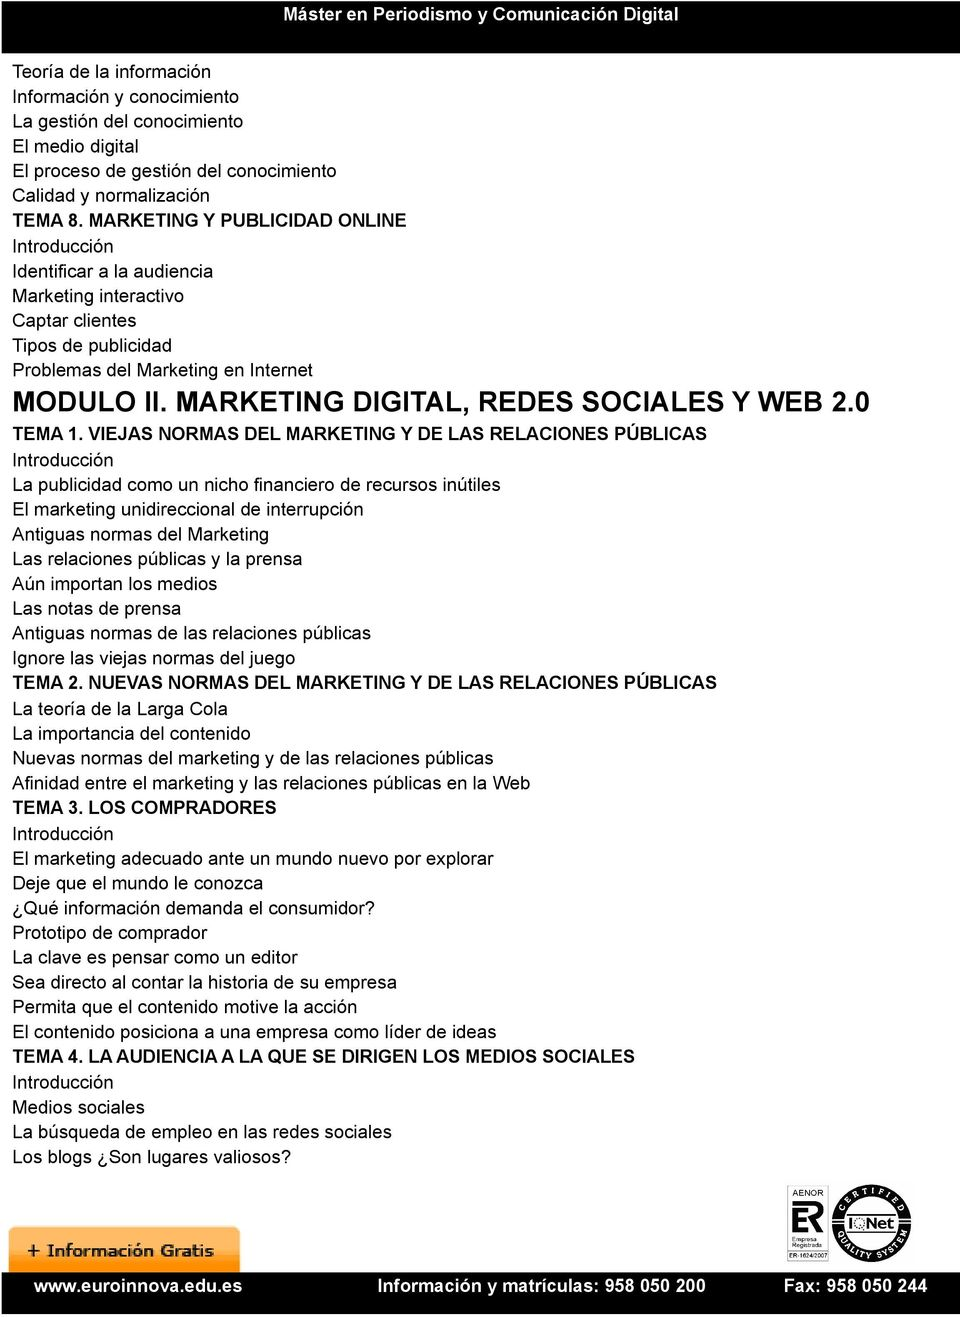 MARKETING DIGITAL, REDES SOCIALES Y WEB 2.0 TEMA 1.